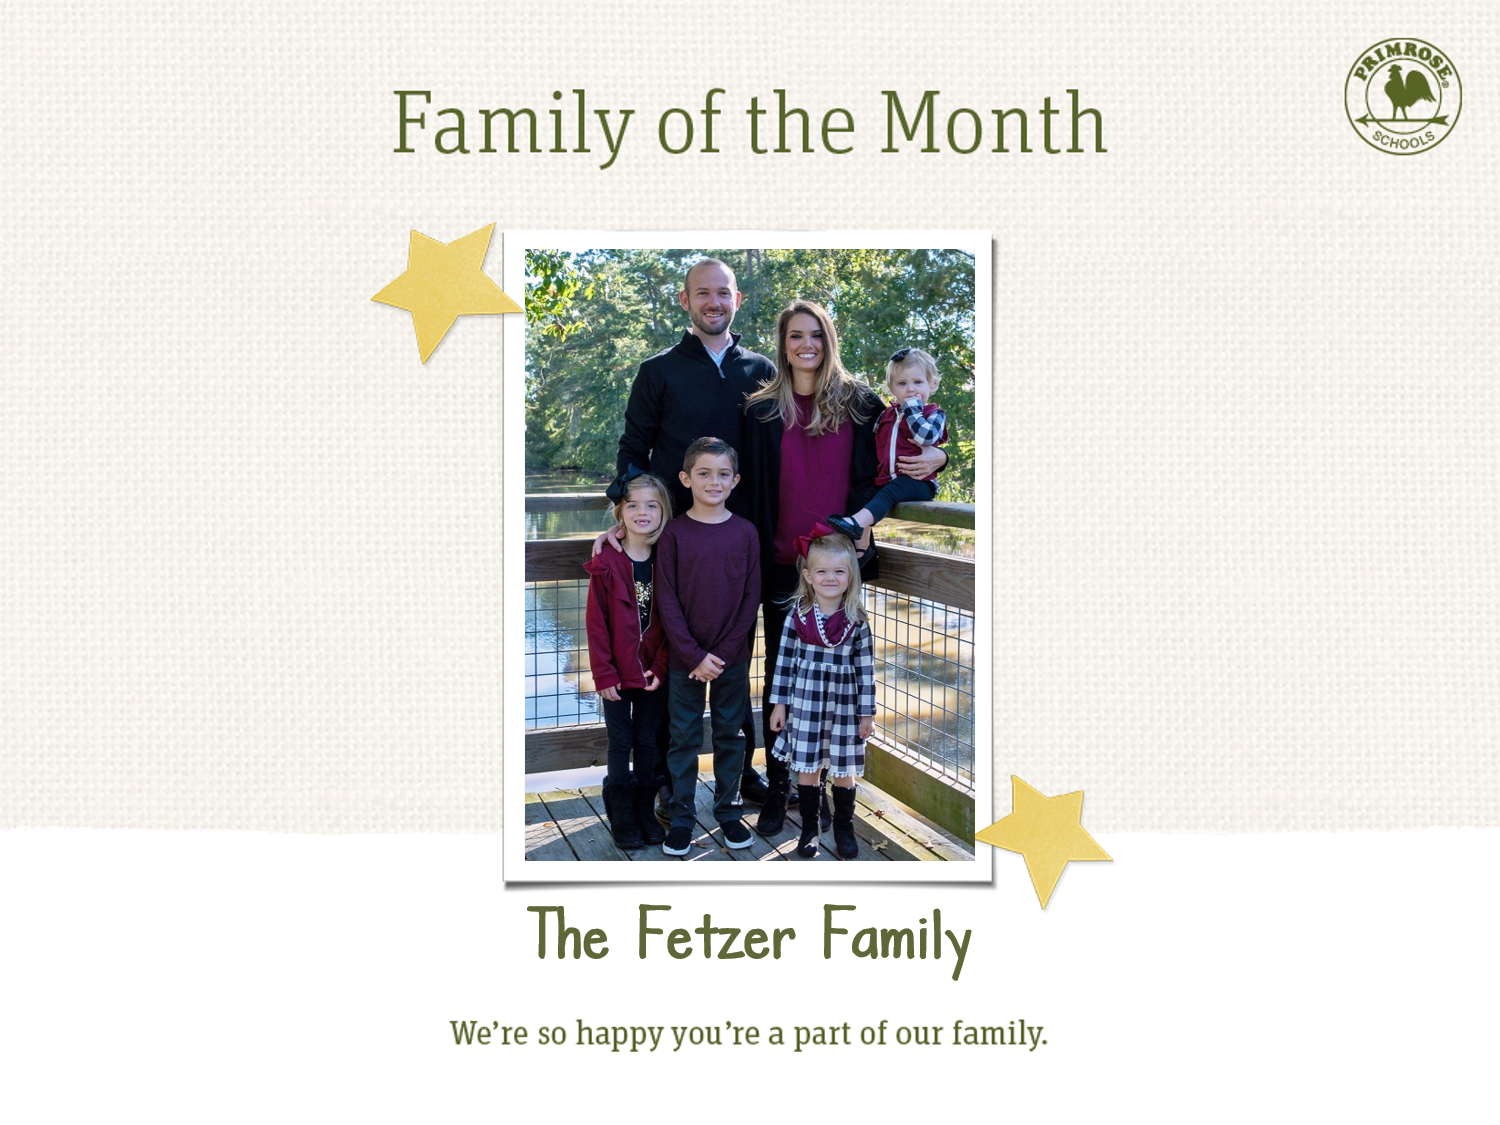 Family of the Month, March 2019 Fetzer Family